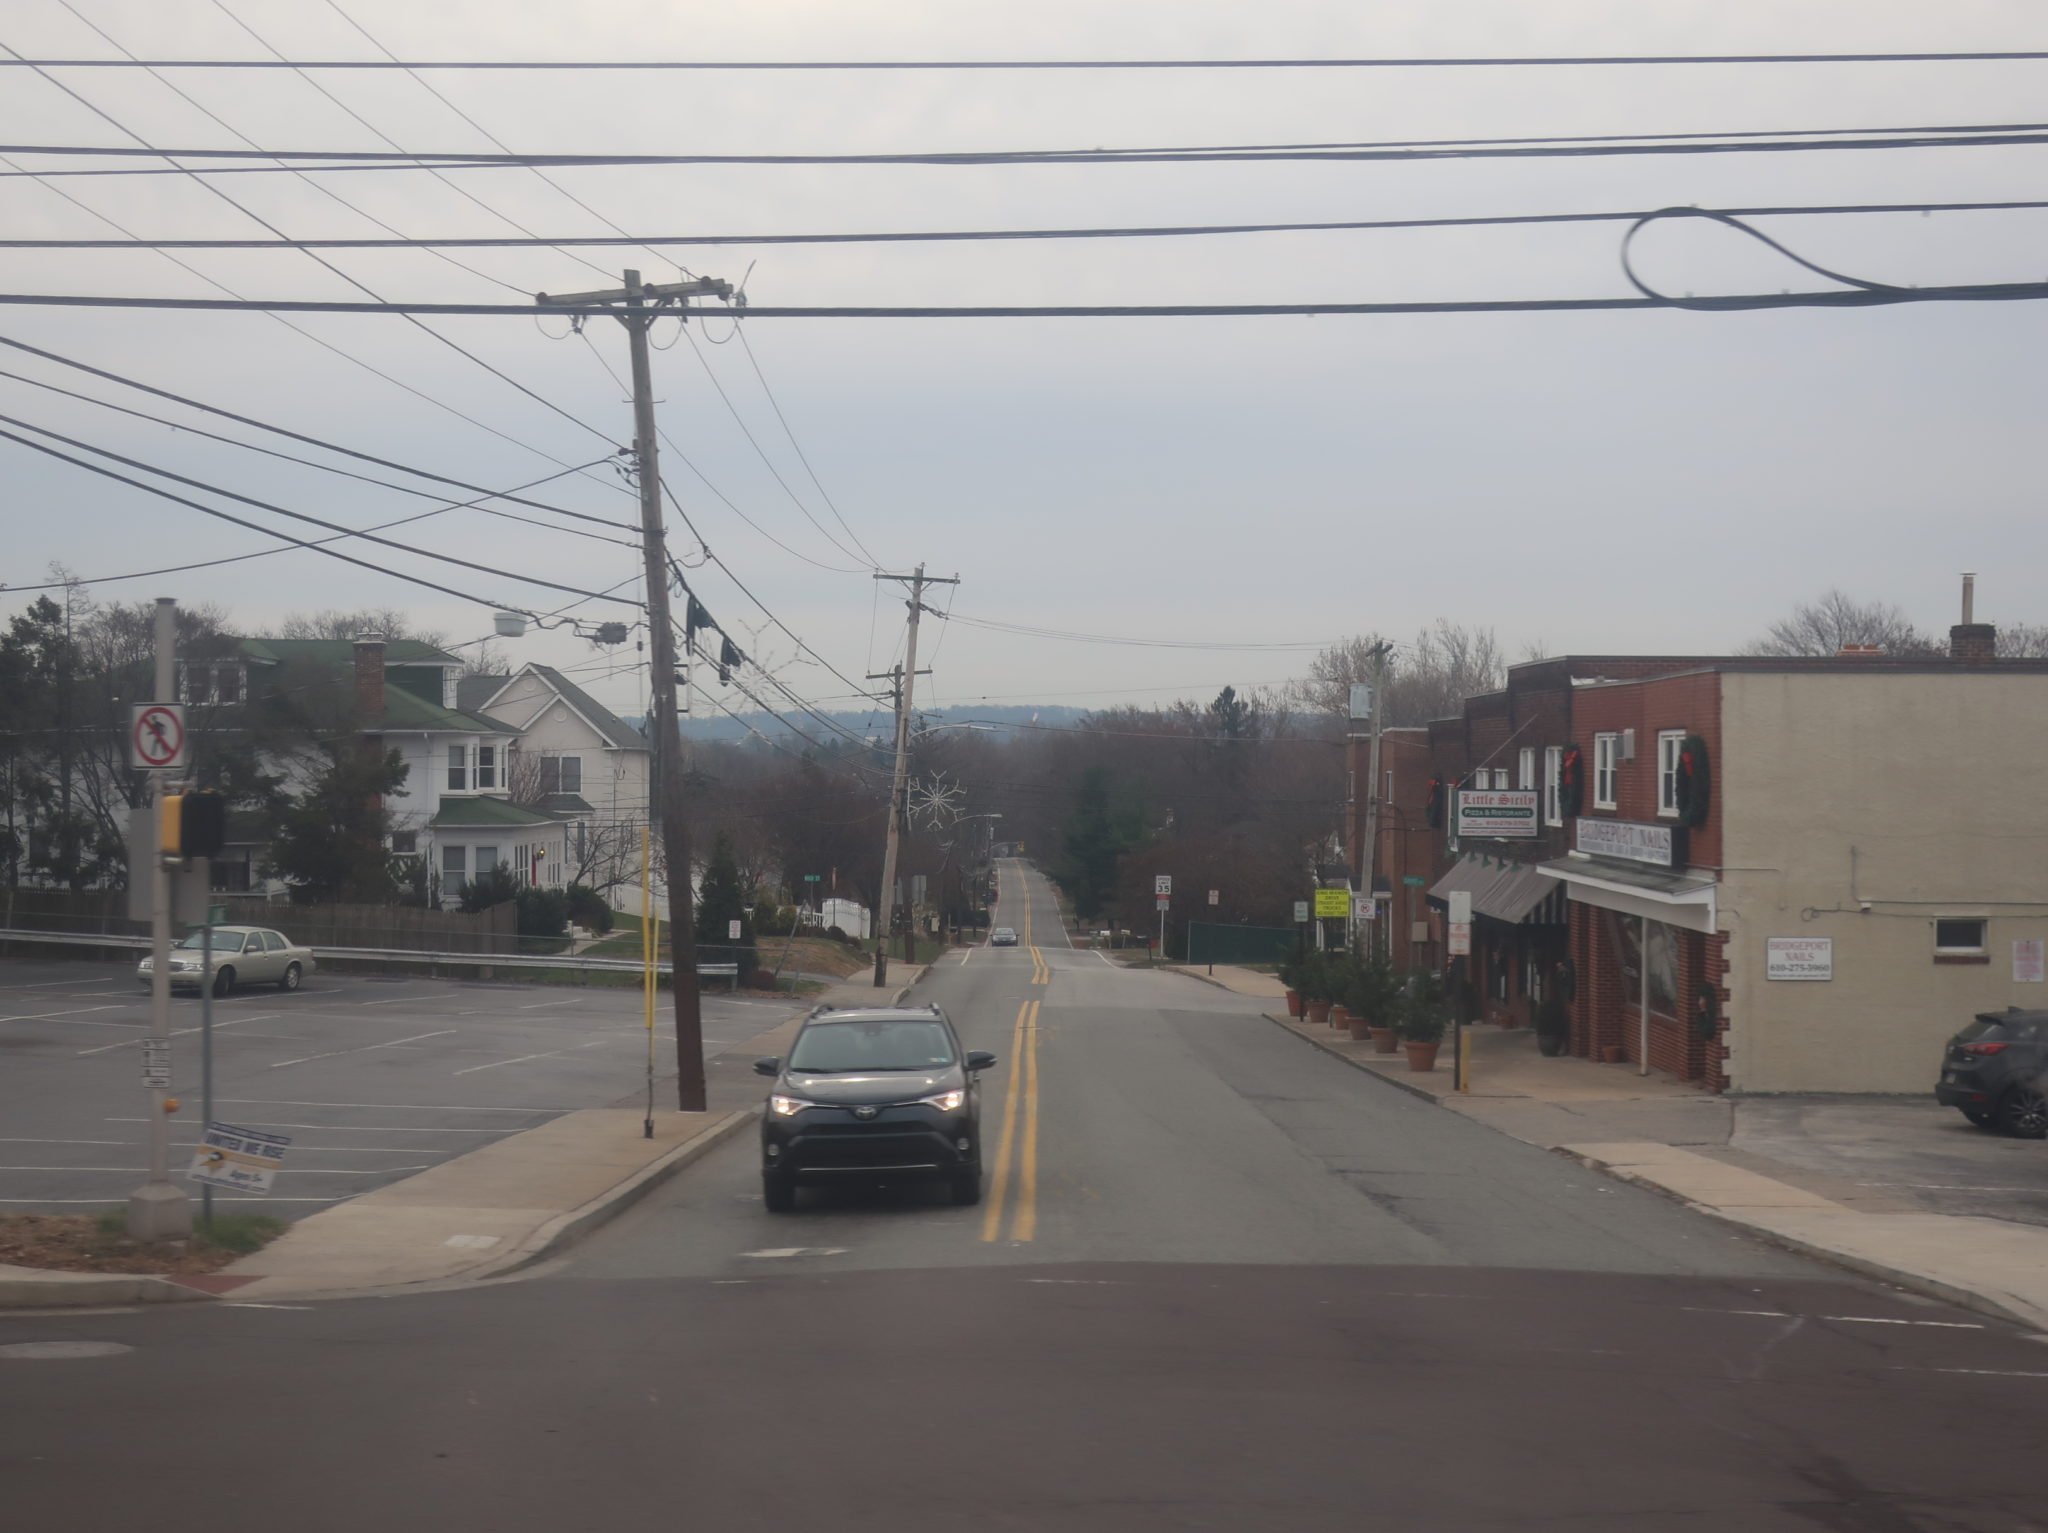 99 Phoenixville To Norristown Transportation Center Miles In Transit